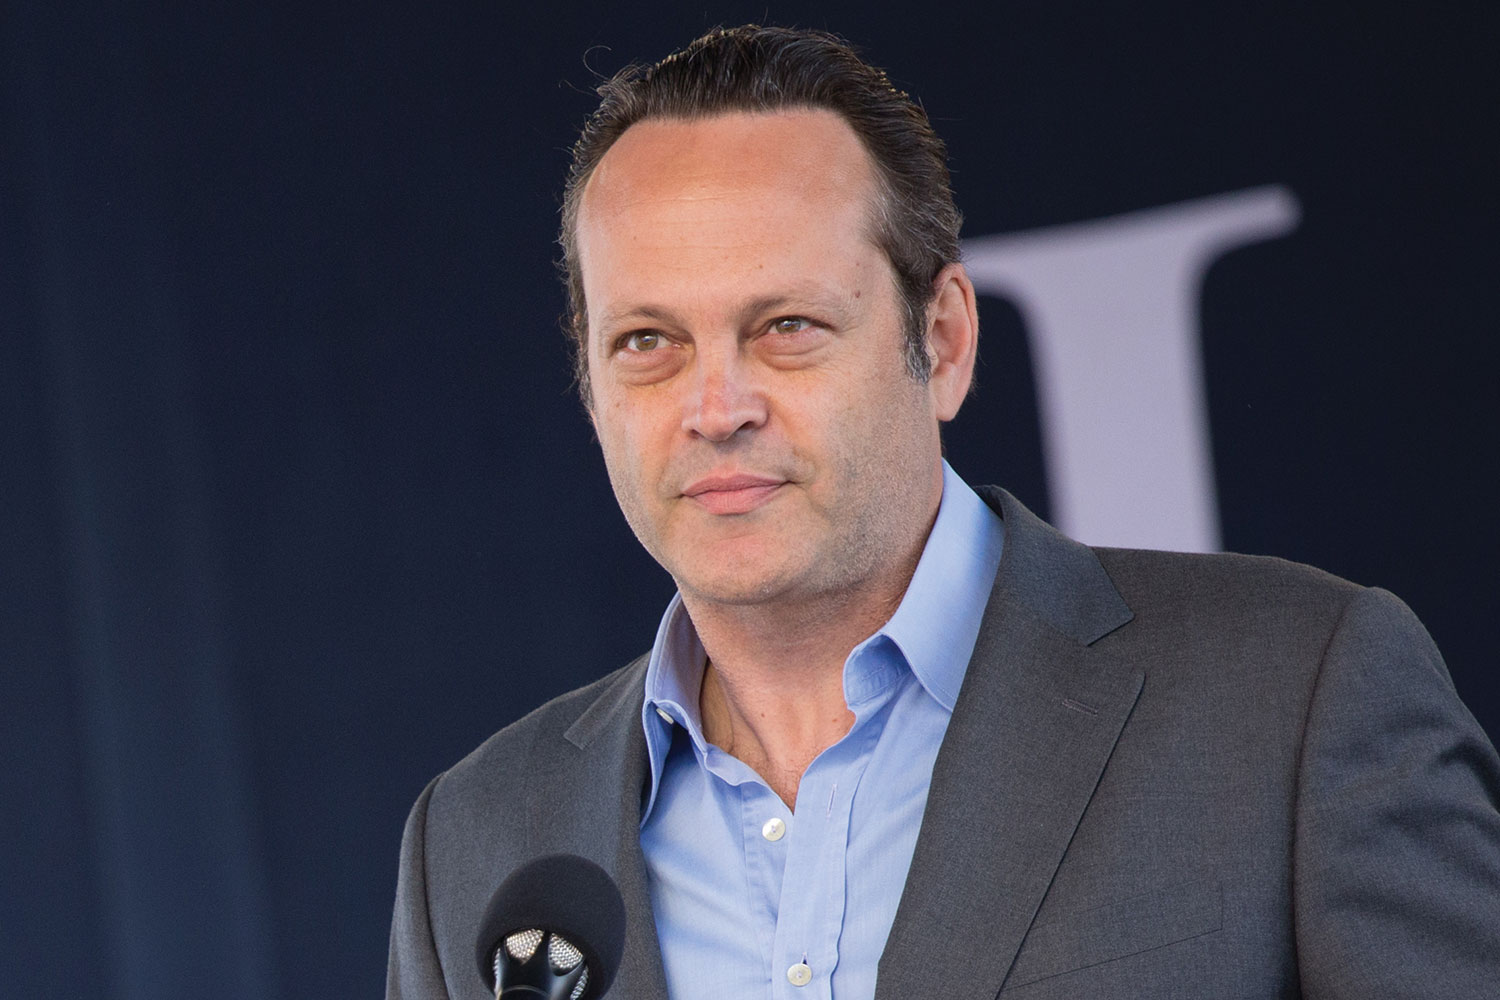 Hollywood actor Vince Vaughn surprised graduates at Liberty's 43rd Commencement.